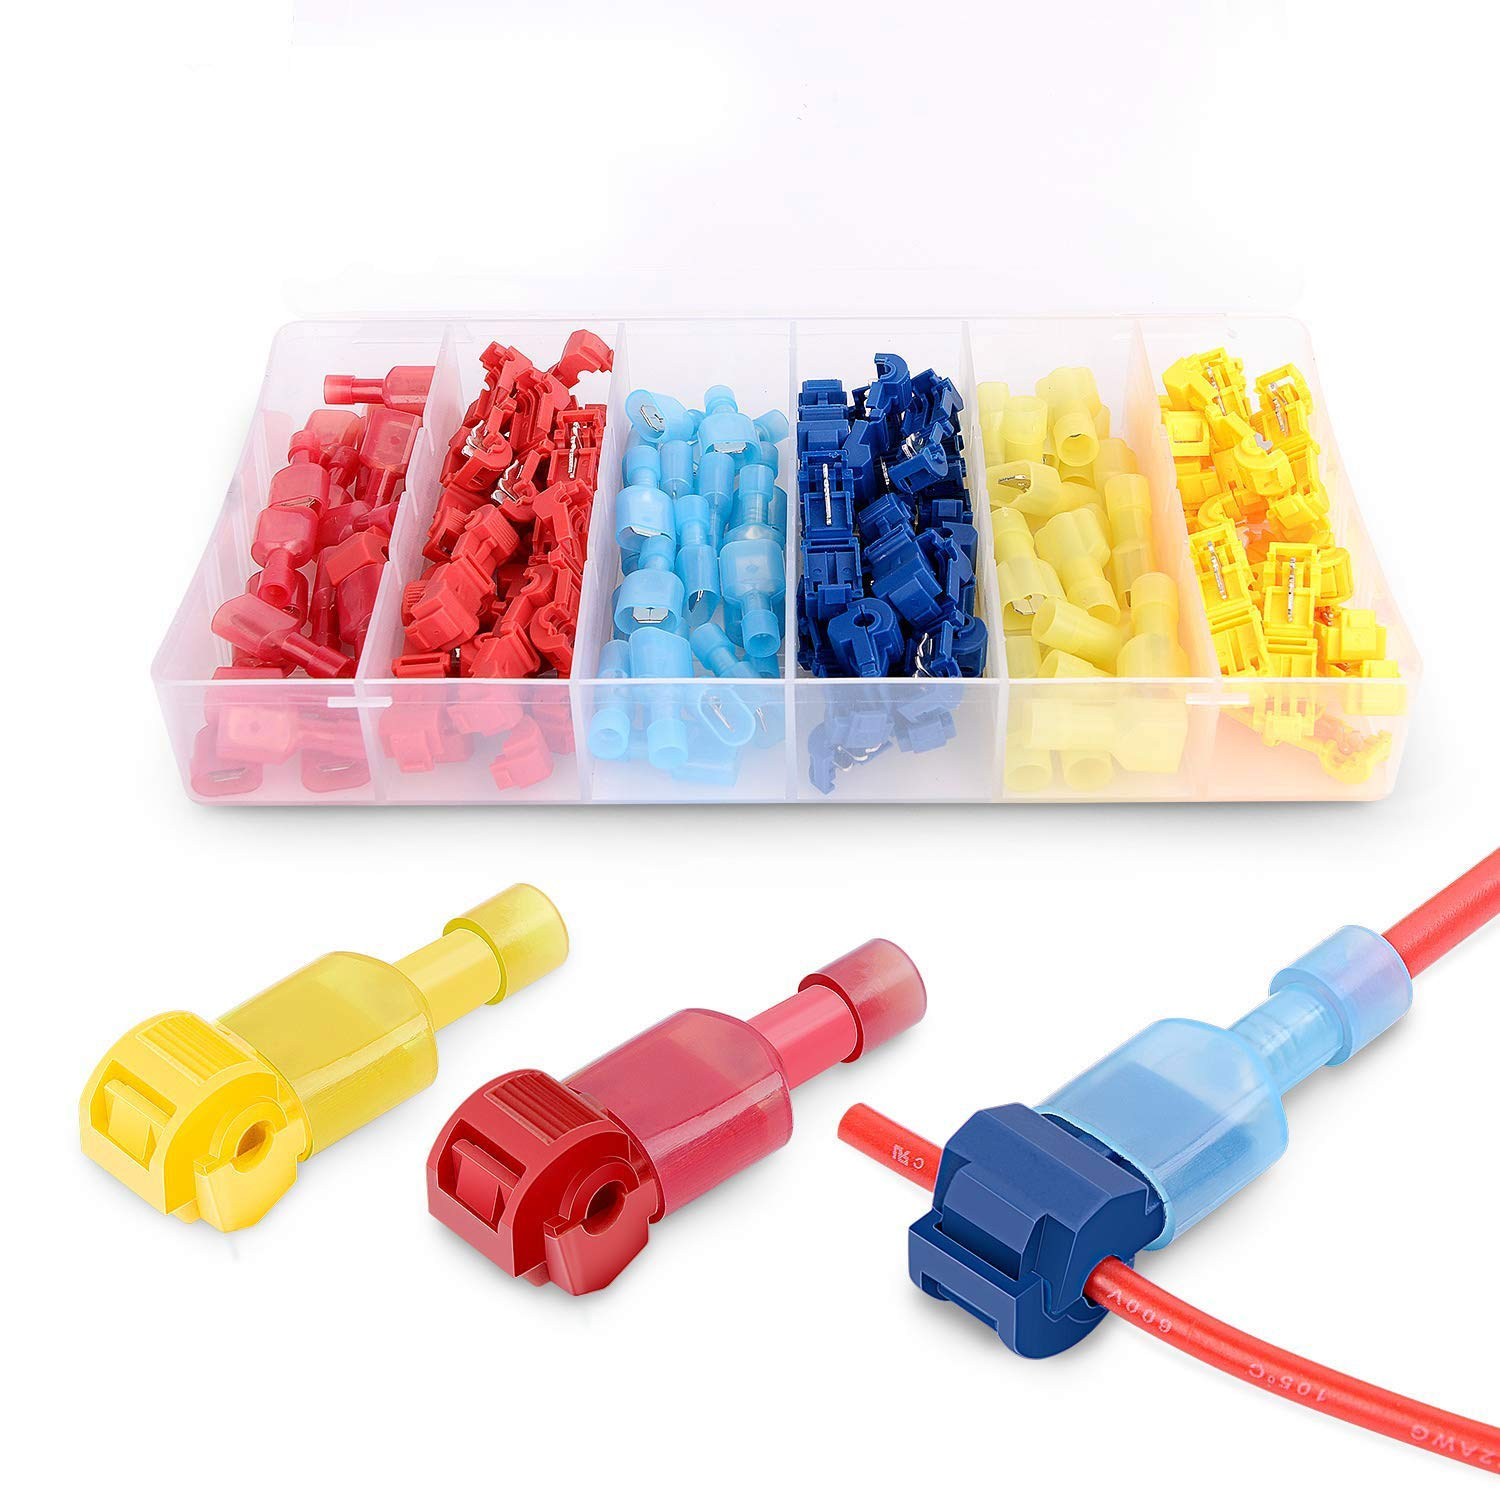 60 Pcs Self-Stripping Electrical T-Tap Wire Spade Connector Set Assortment Kits